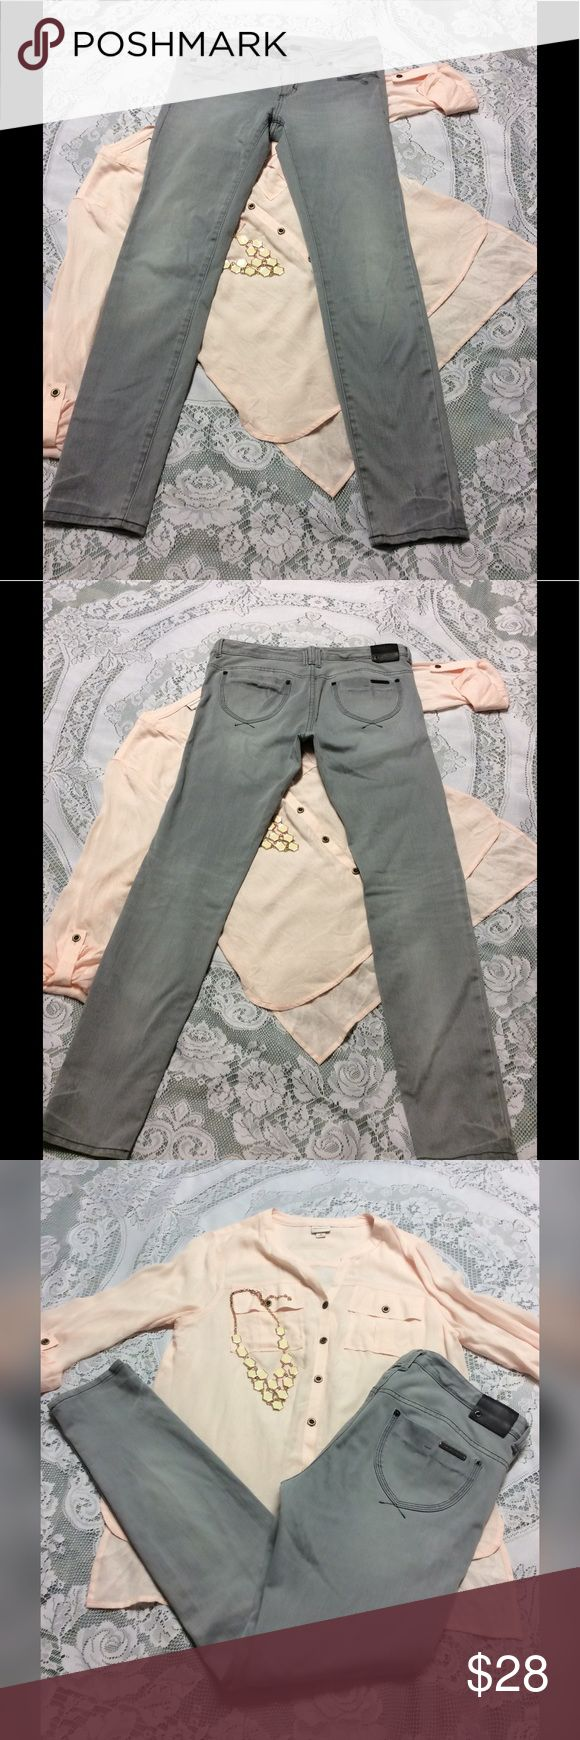 A|X Armani Exchange Grey Jeans A|X grey skinny jeans. Features unique pockets and amazing fit. In great condition with slight stonewashed look. A/X Armani Exchange Jeans Skinny